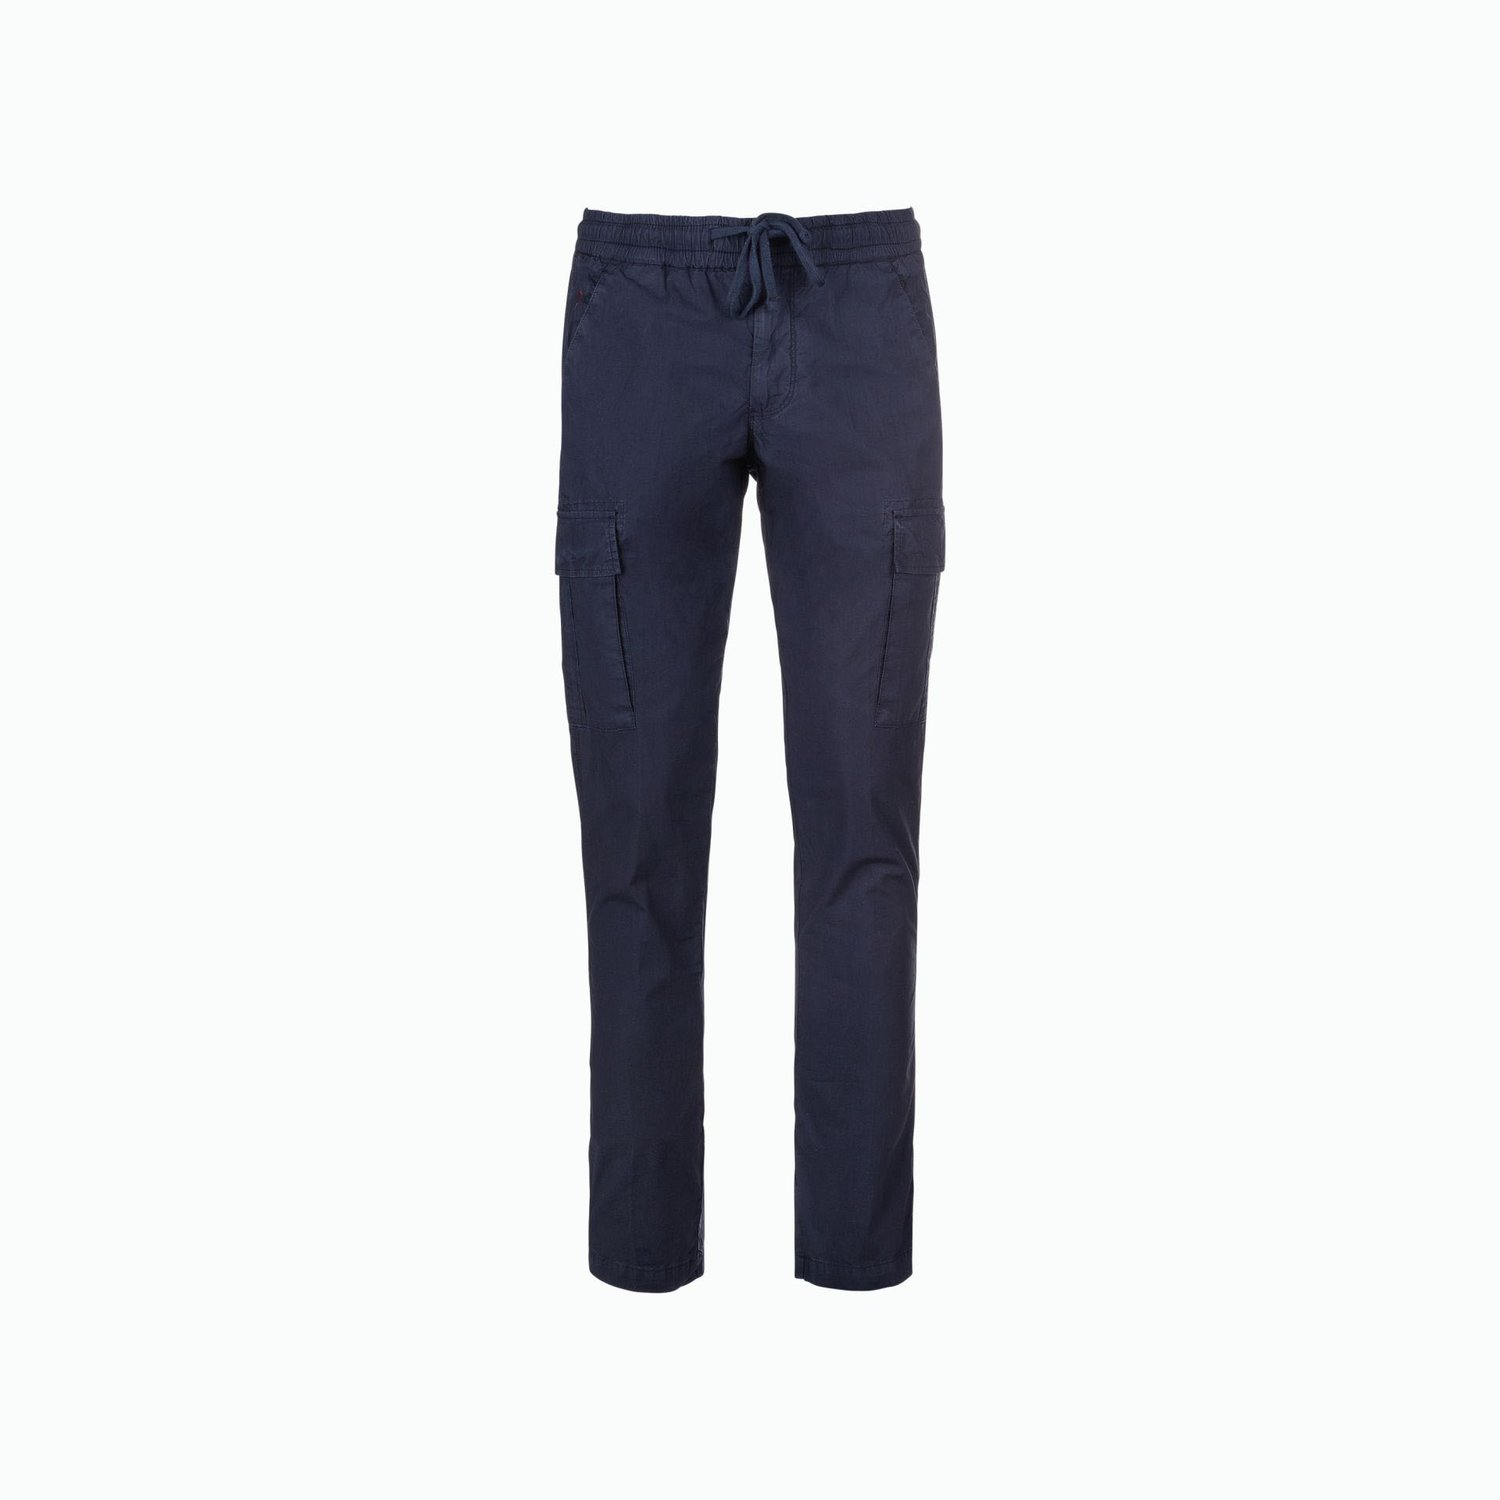 Trousers A77 - Marinenblau